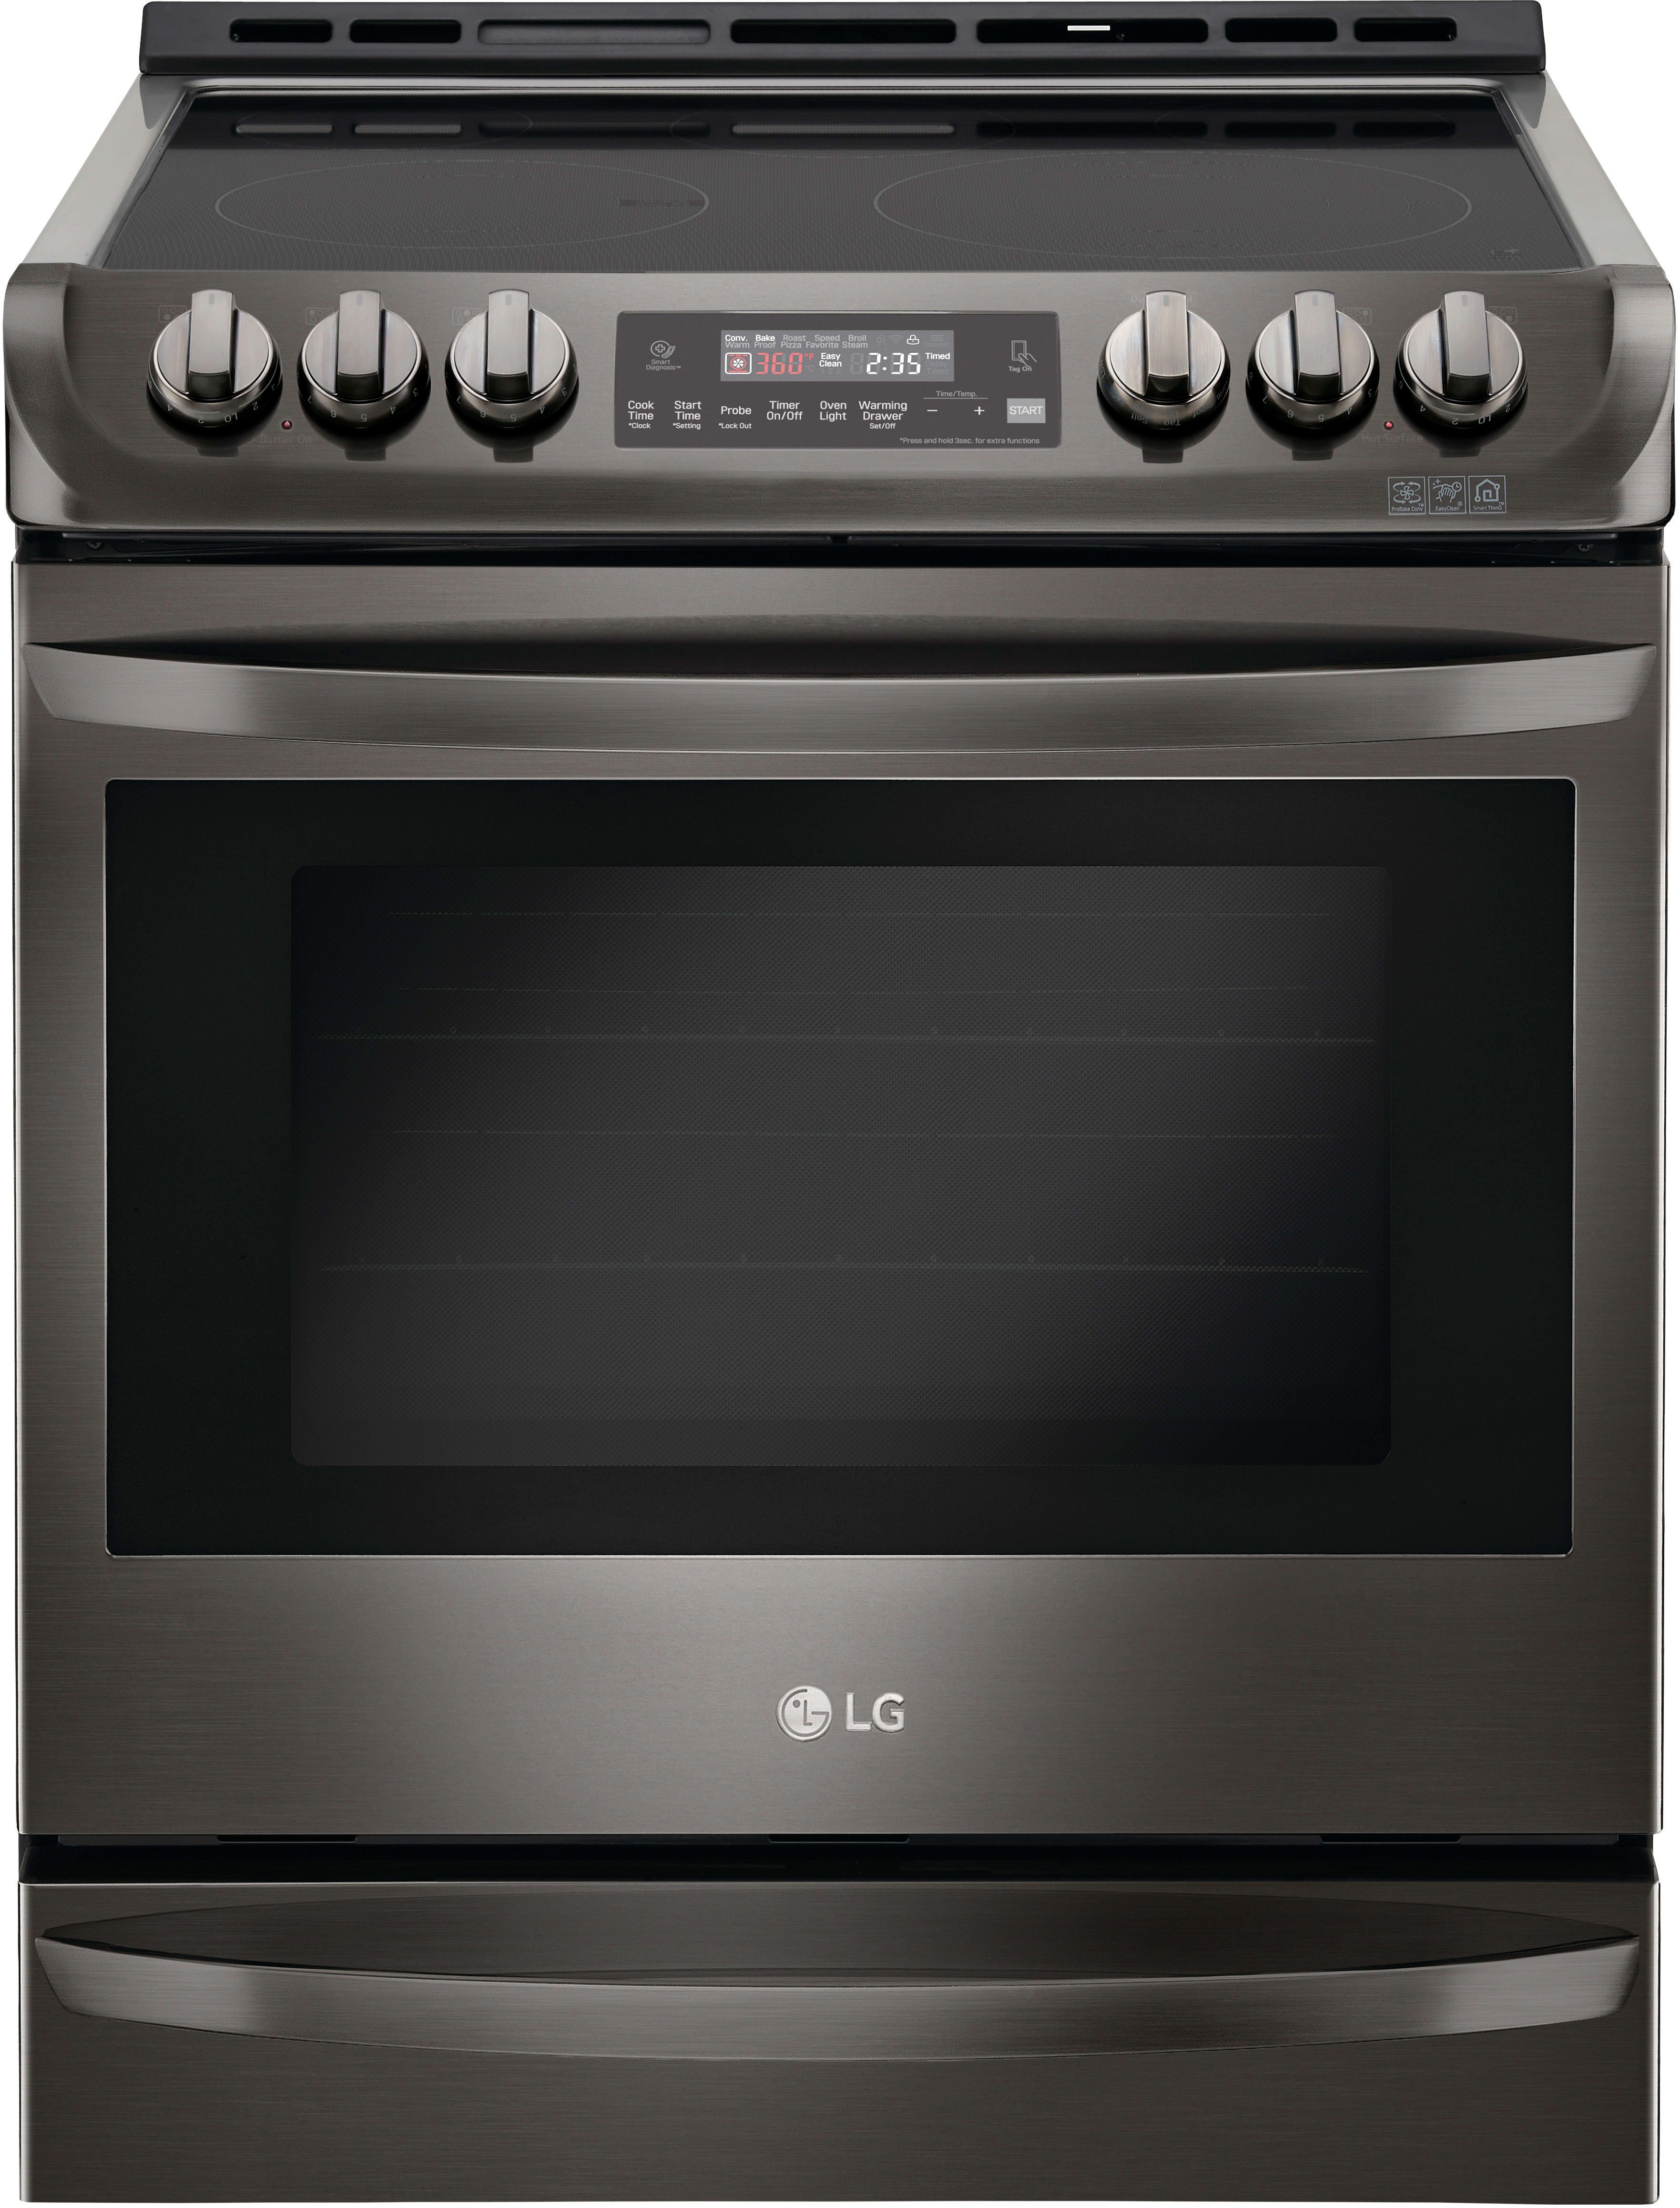 Lg Lse4613bd 30 Inch Slide In Electric Range With Probake Convection Easyclean Wideview Window Conversion Automatic Safety Shut Off